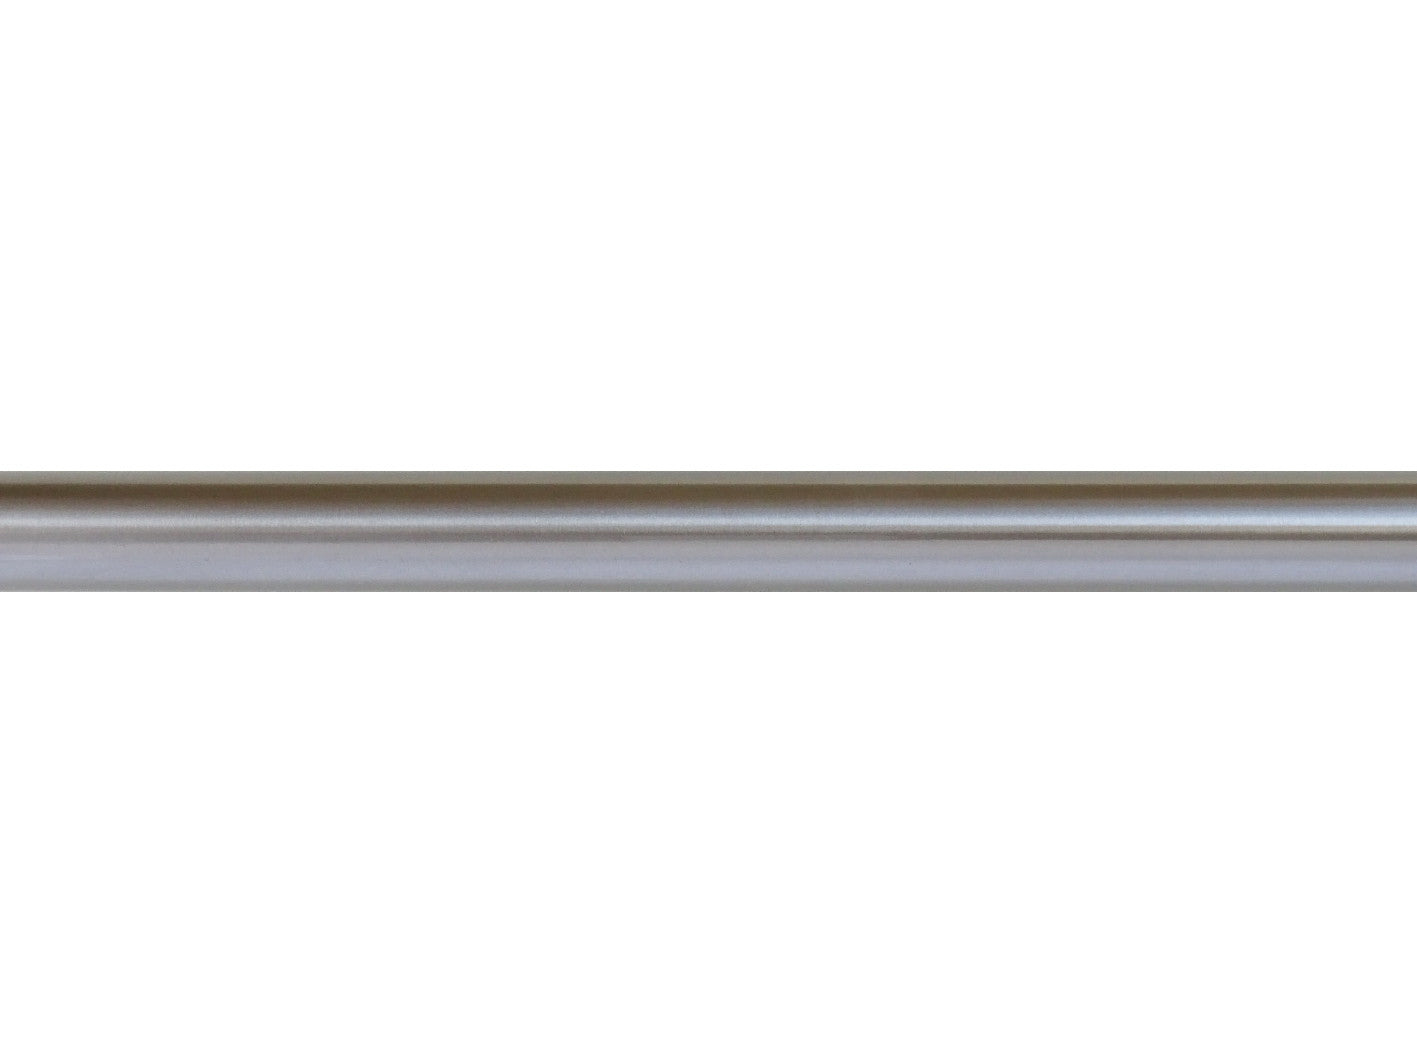 30mm stainless steel curtain pole